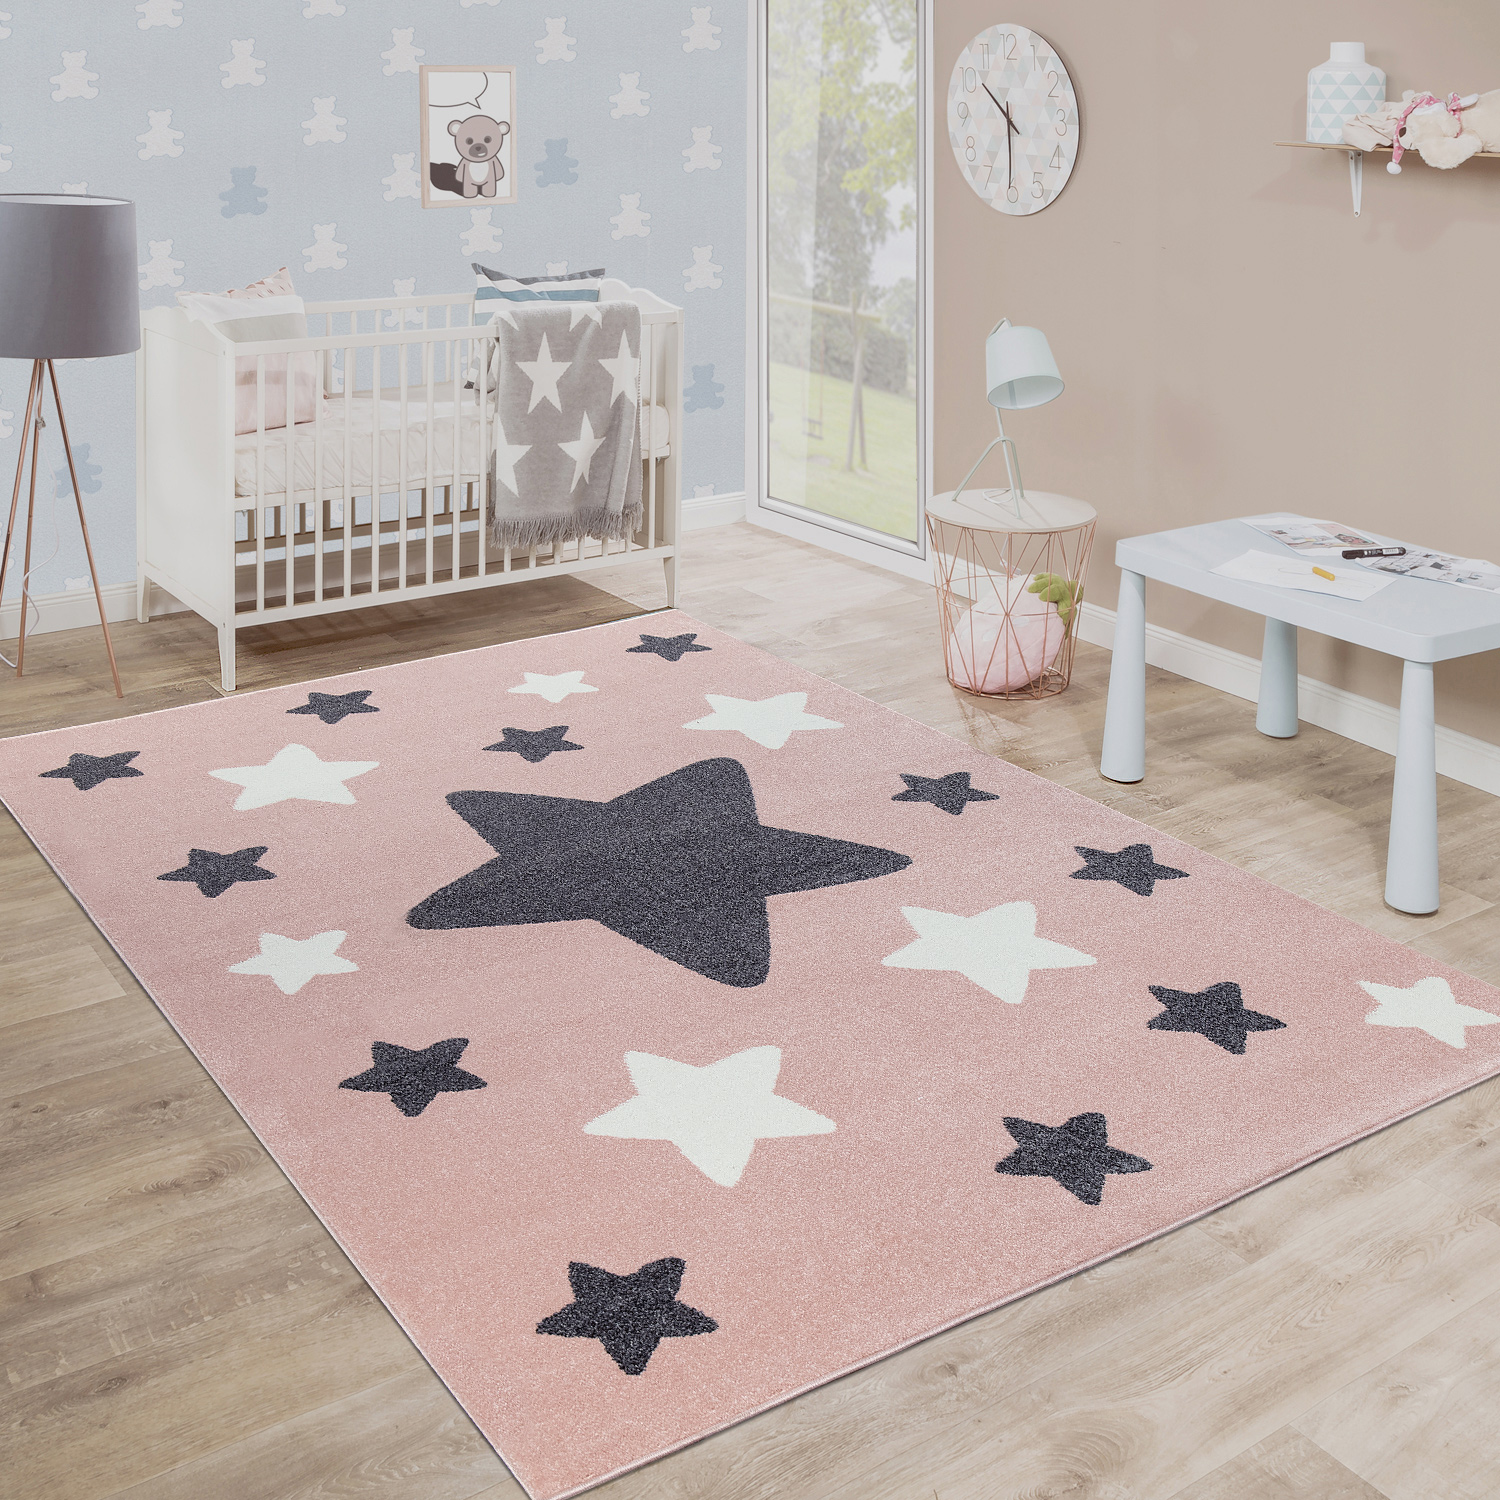 Rug Childrens Bedroom Childrens Rug Large and Small Stars in Pink Grey